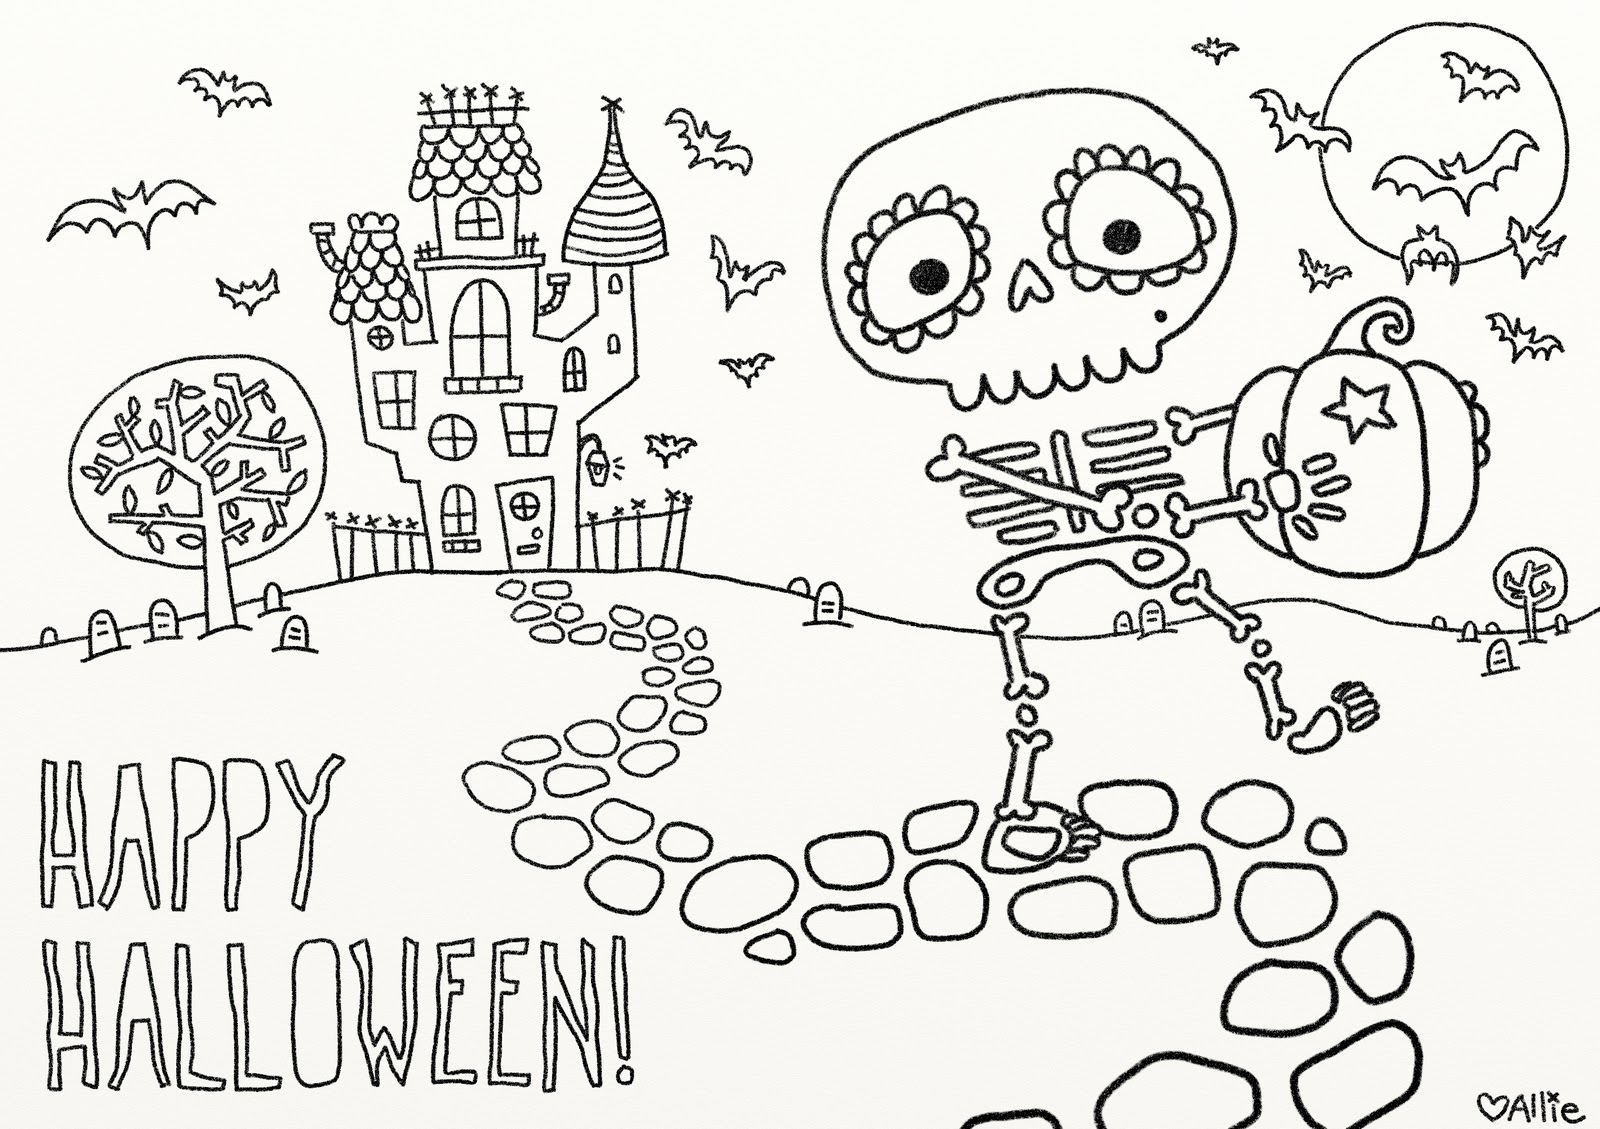 9 Fun Free Printable Halloween Coloring Pages - Free Printable Halloween Coloring Pages